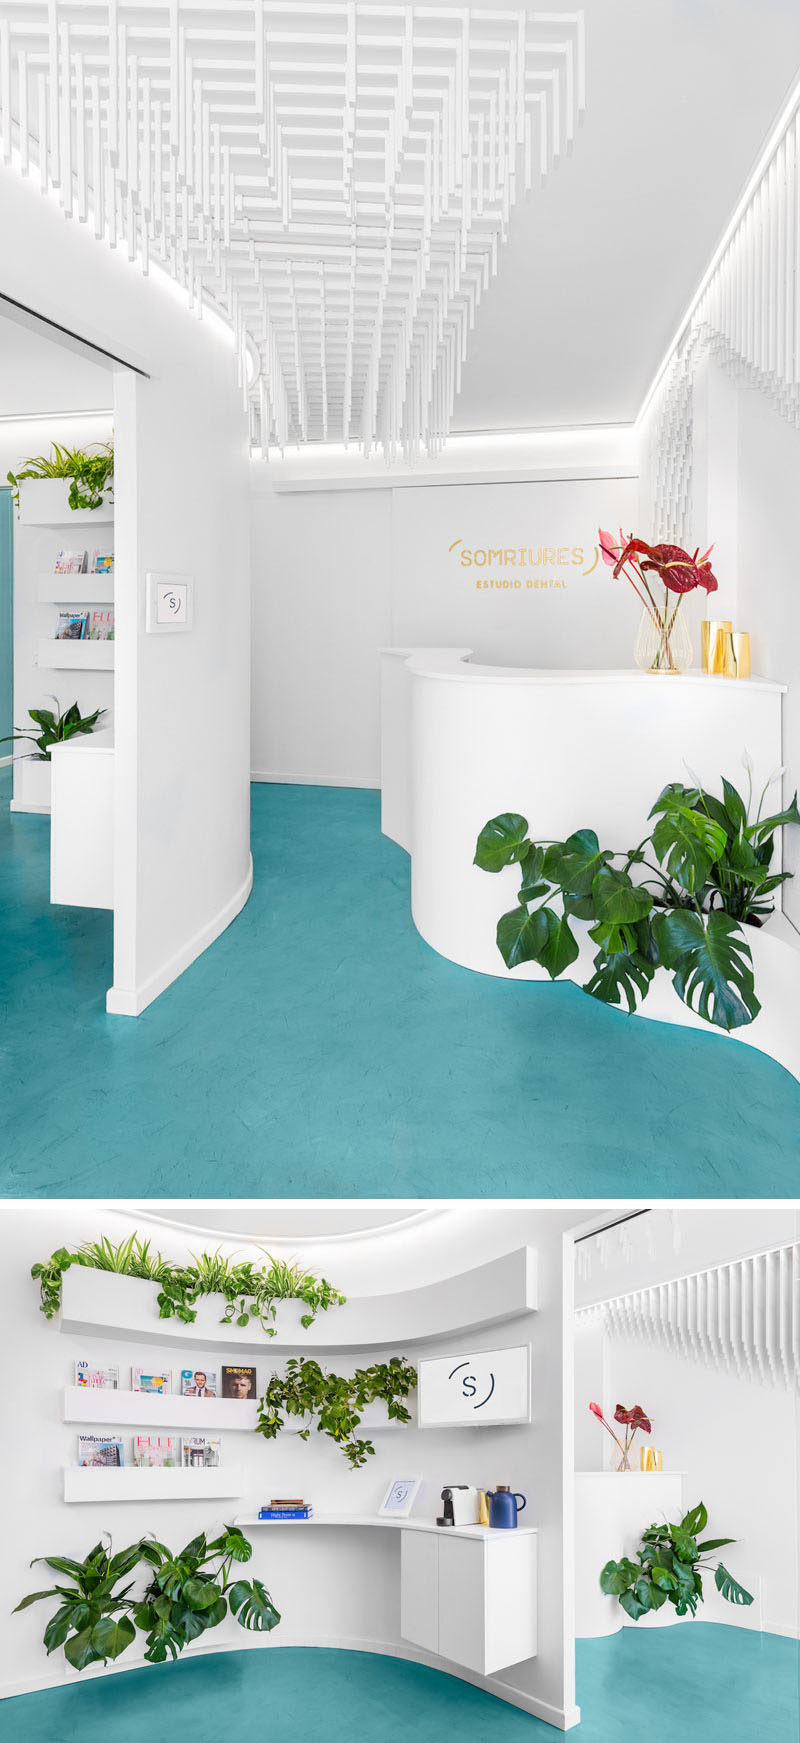 This modern dental clinic features a curved reception desk that greets visitors, while plants add a natural touch. There's a waiting room beside the reception area and white shelving wraps around the corner, creating a place to store reading materials. #InteriorDesign #ReceptionDesk #Dentist #Shelving